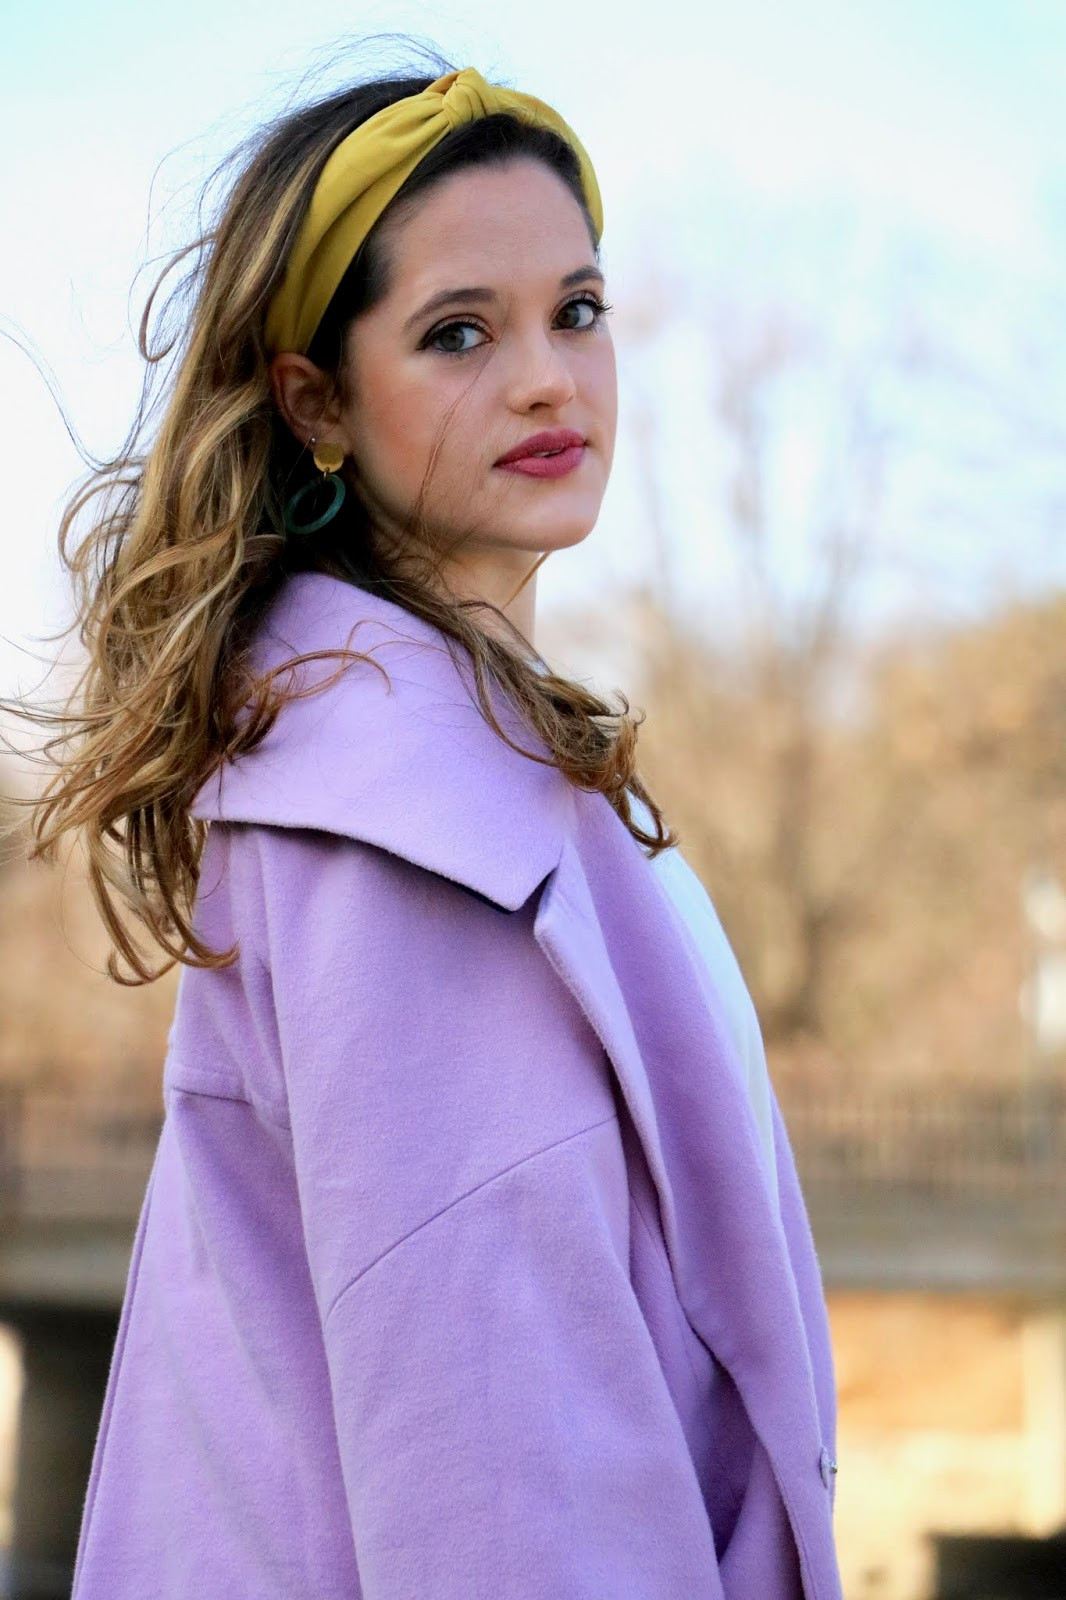 Nyc fashion blogger Kathleen Harper wearing a yellow fabric headband